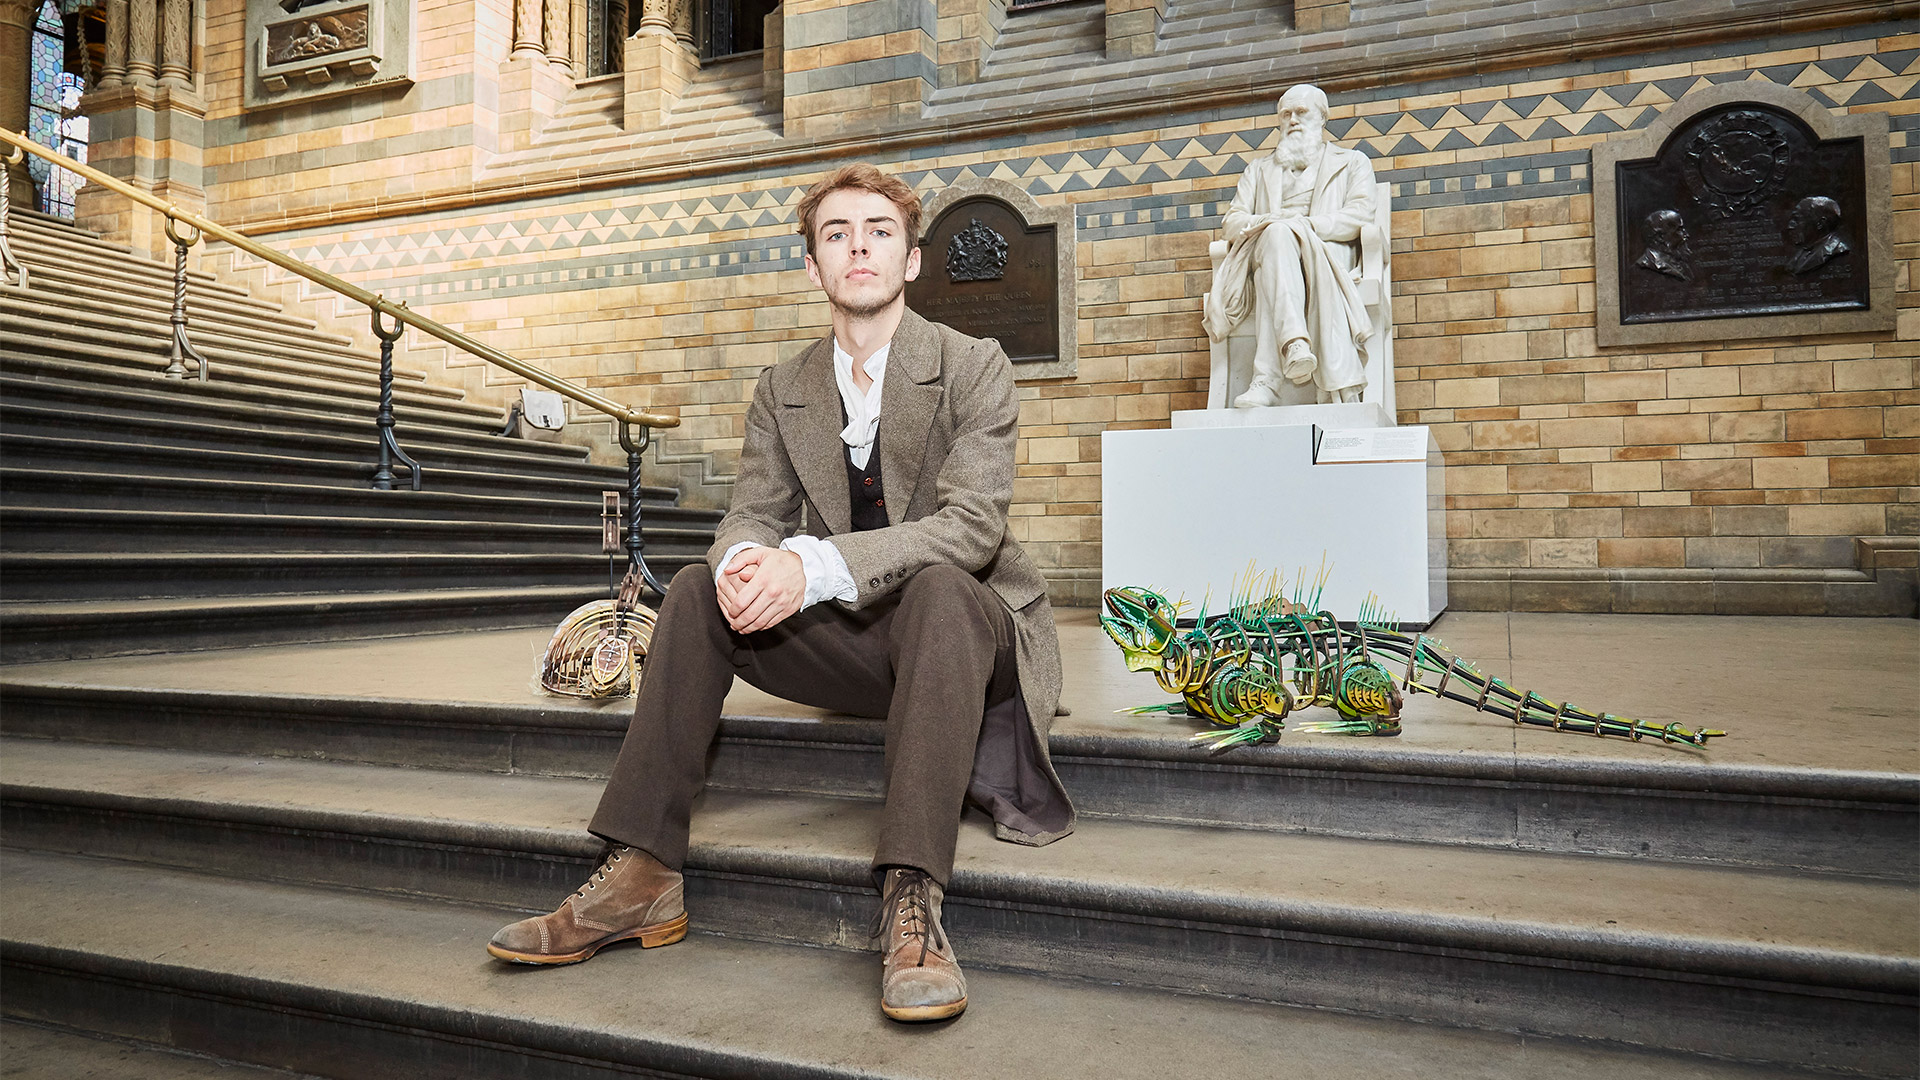 Bradley Foster poses on the steps of the Natural History Museum beside a small dinosaur model.